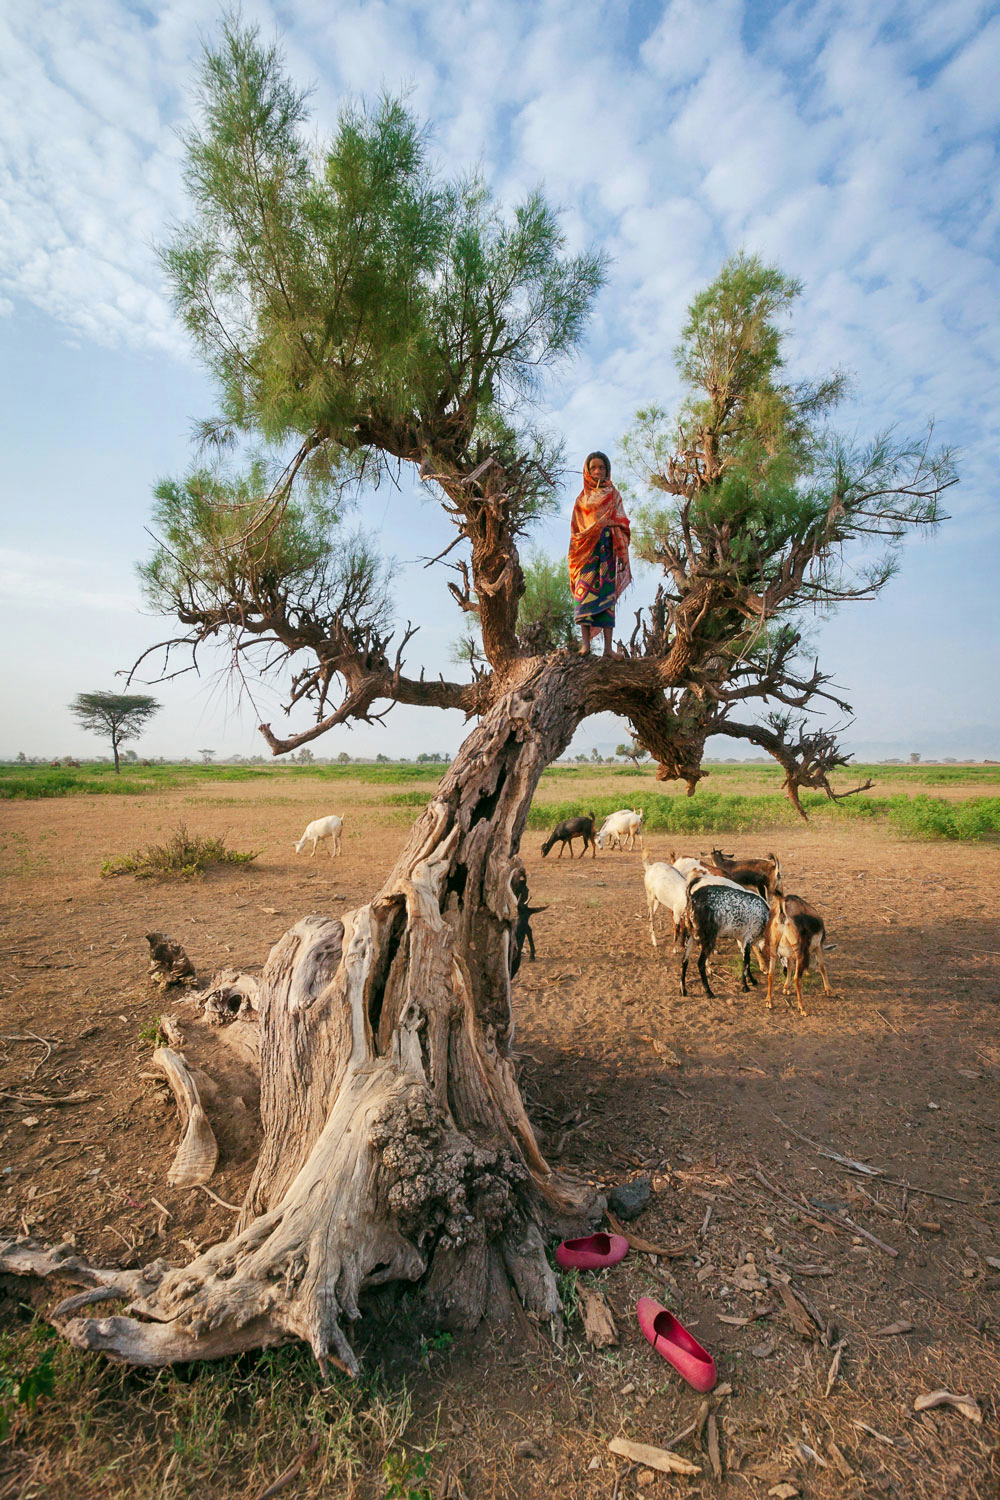 Asalmahi watches the goats from up in a tree; Afar, Ethiopia